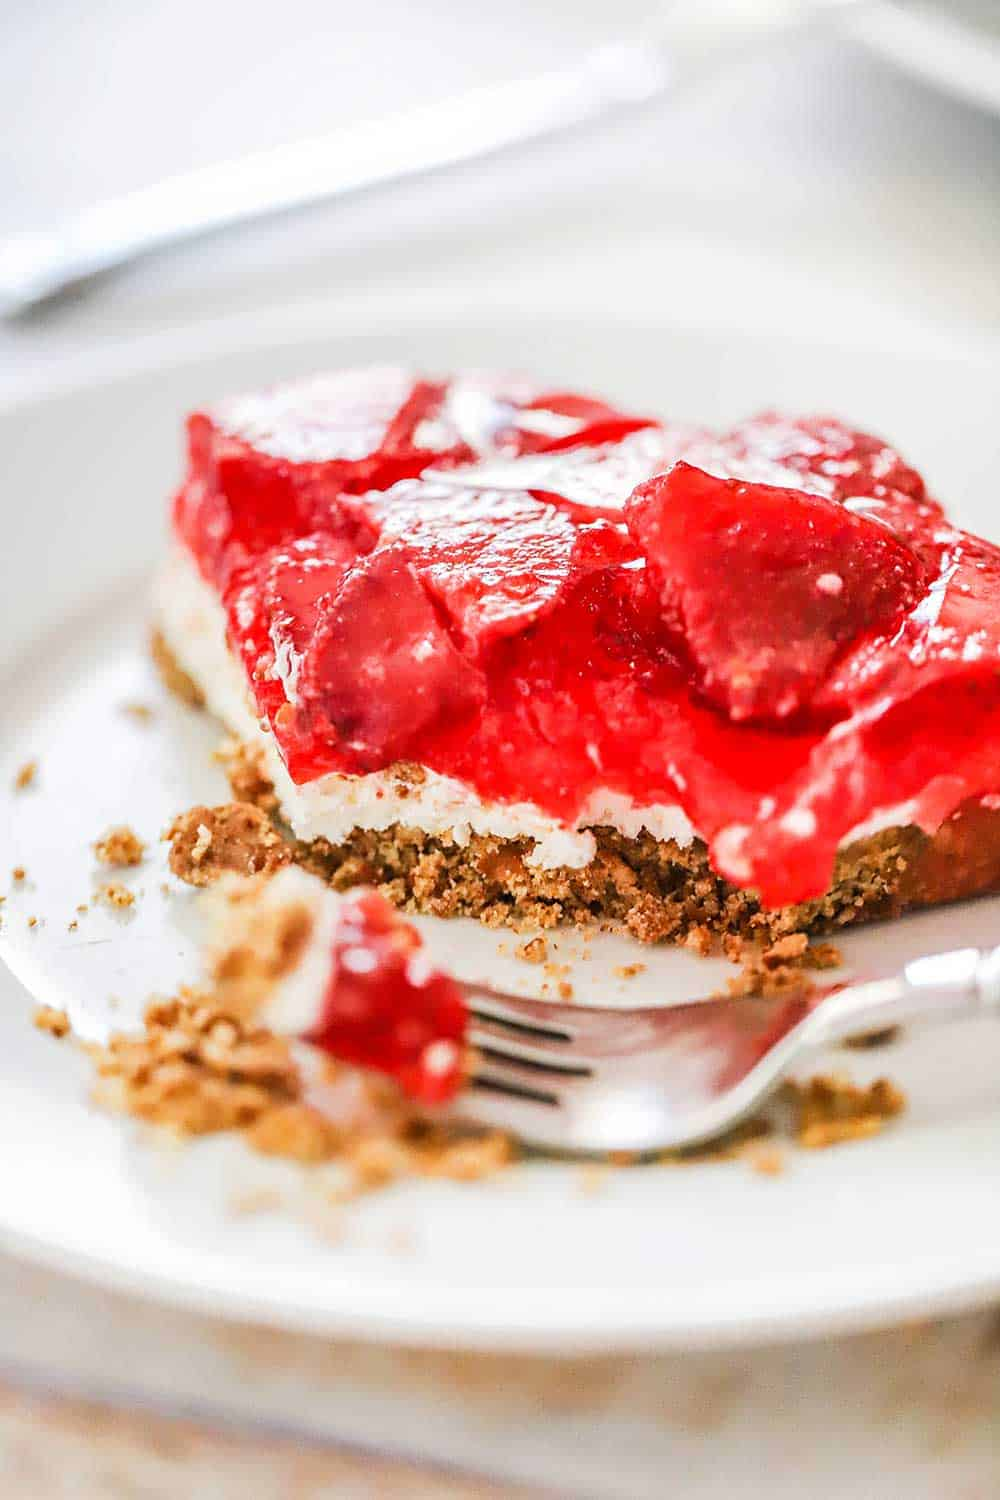 A slice of strawberry pretzel salad with a bite taken out of it sitting on a white plate with a fork next to it.